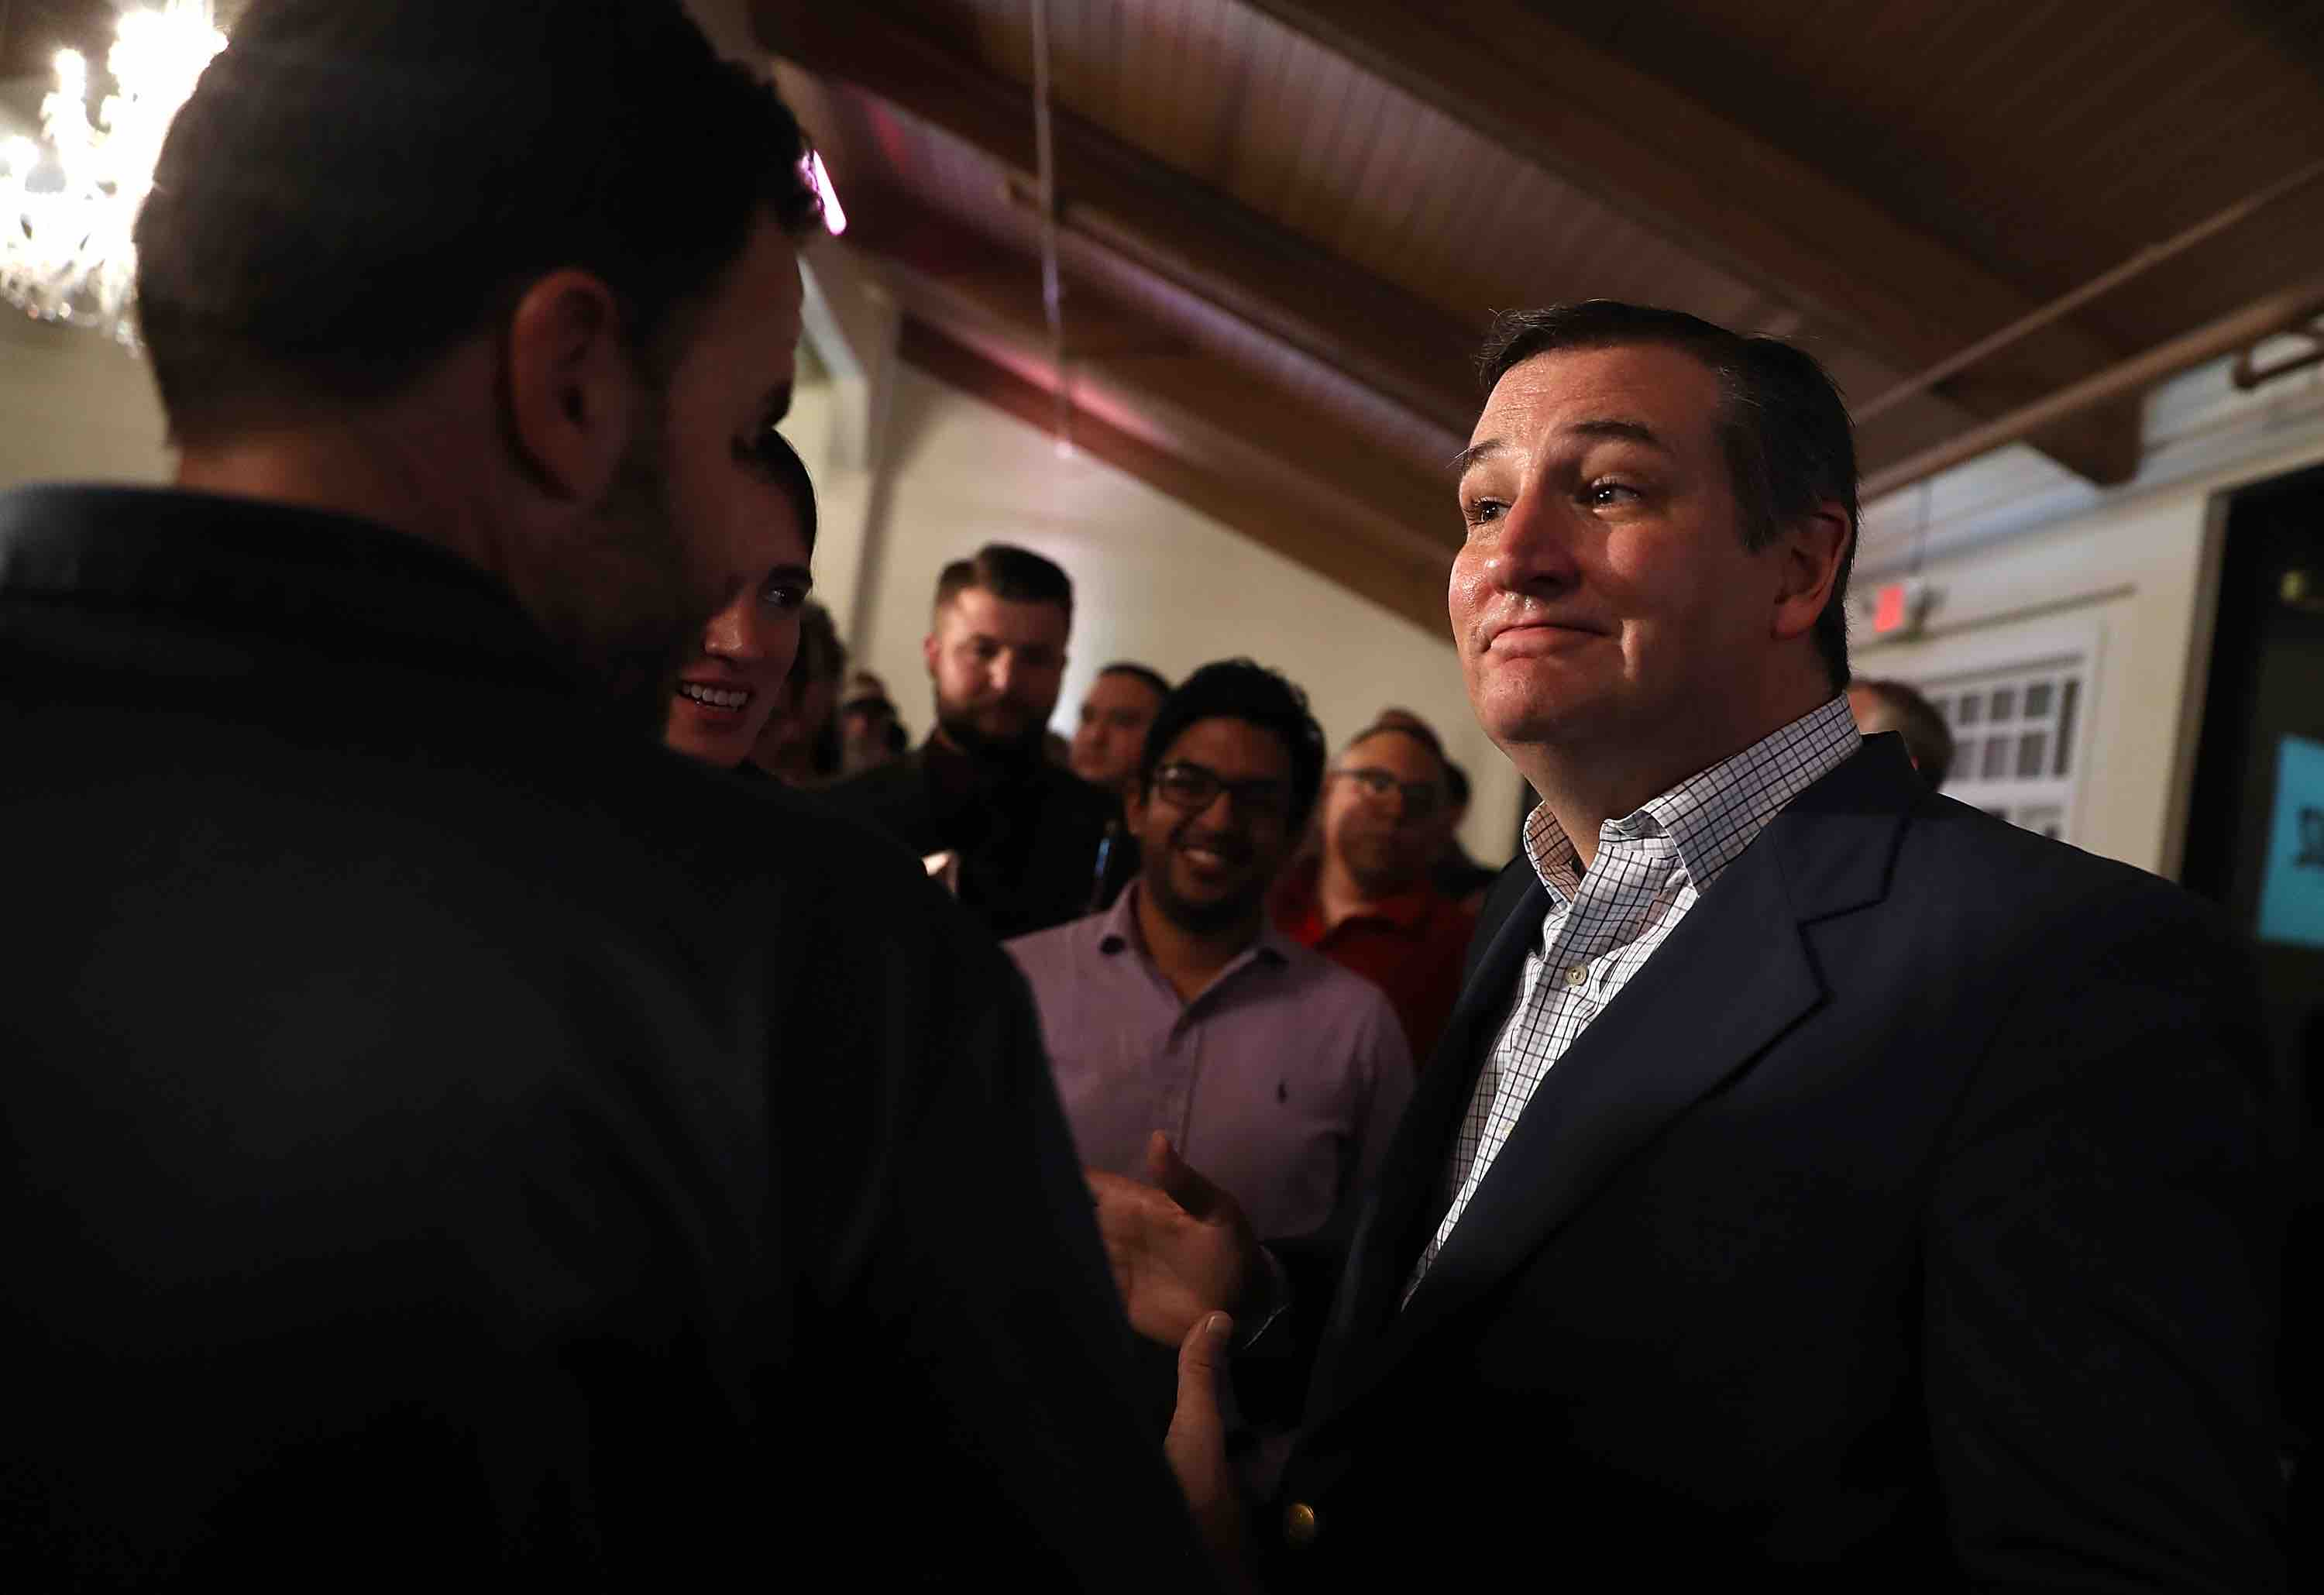 Ted Cruz's New Beard Has Taken Over the Internet